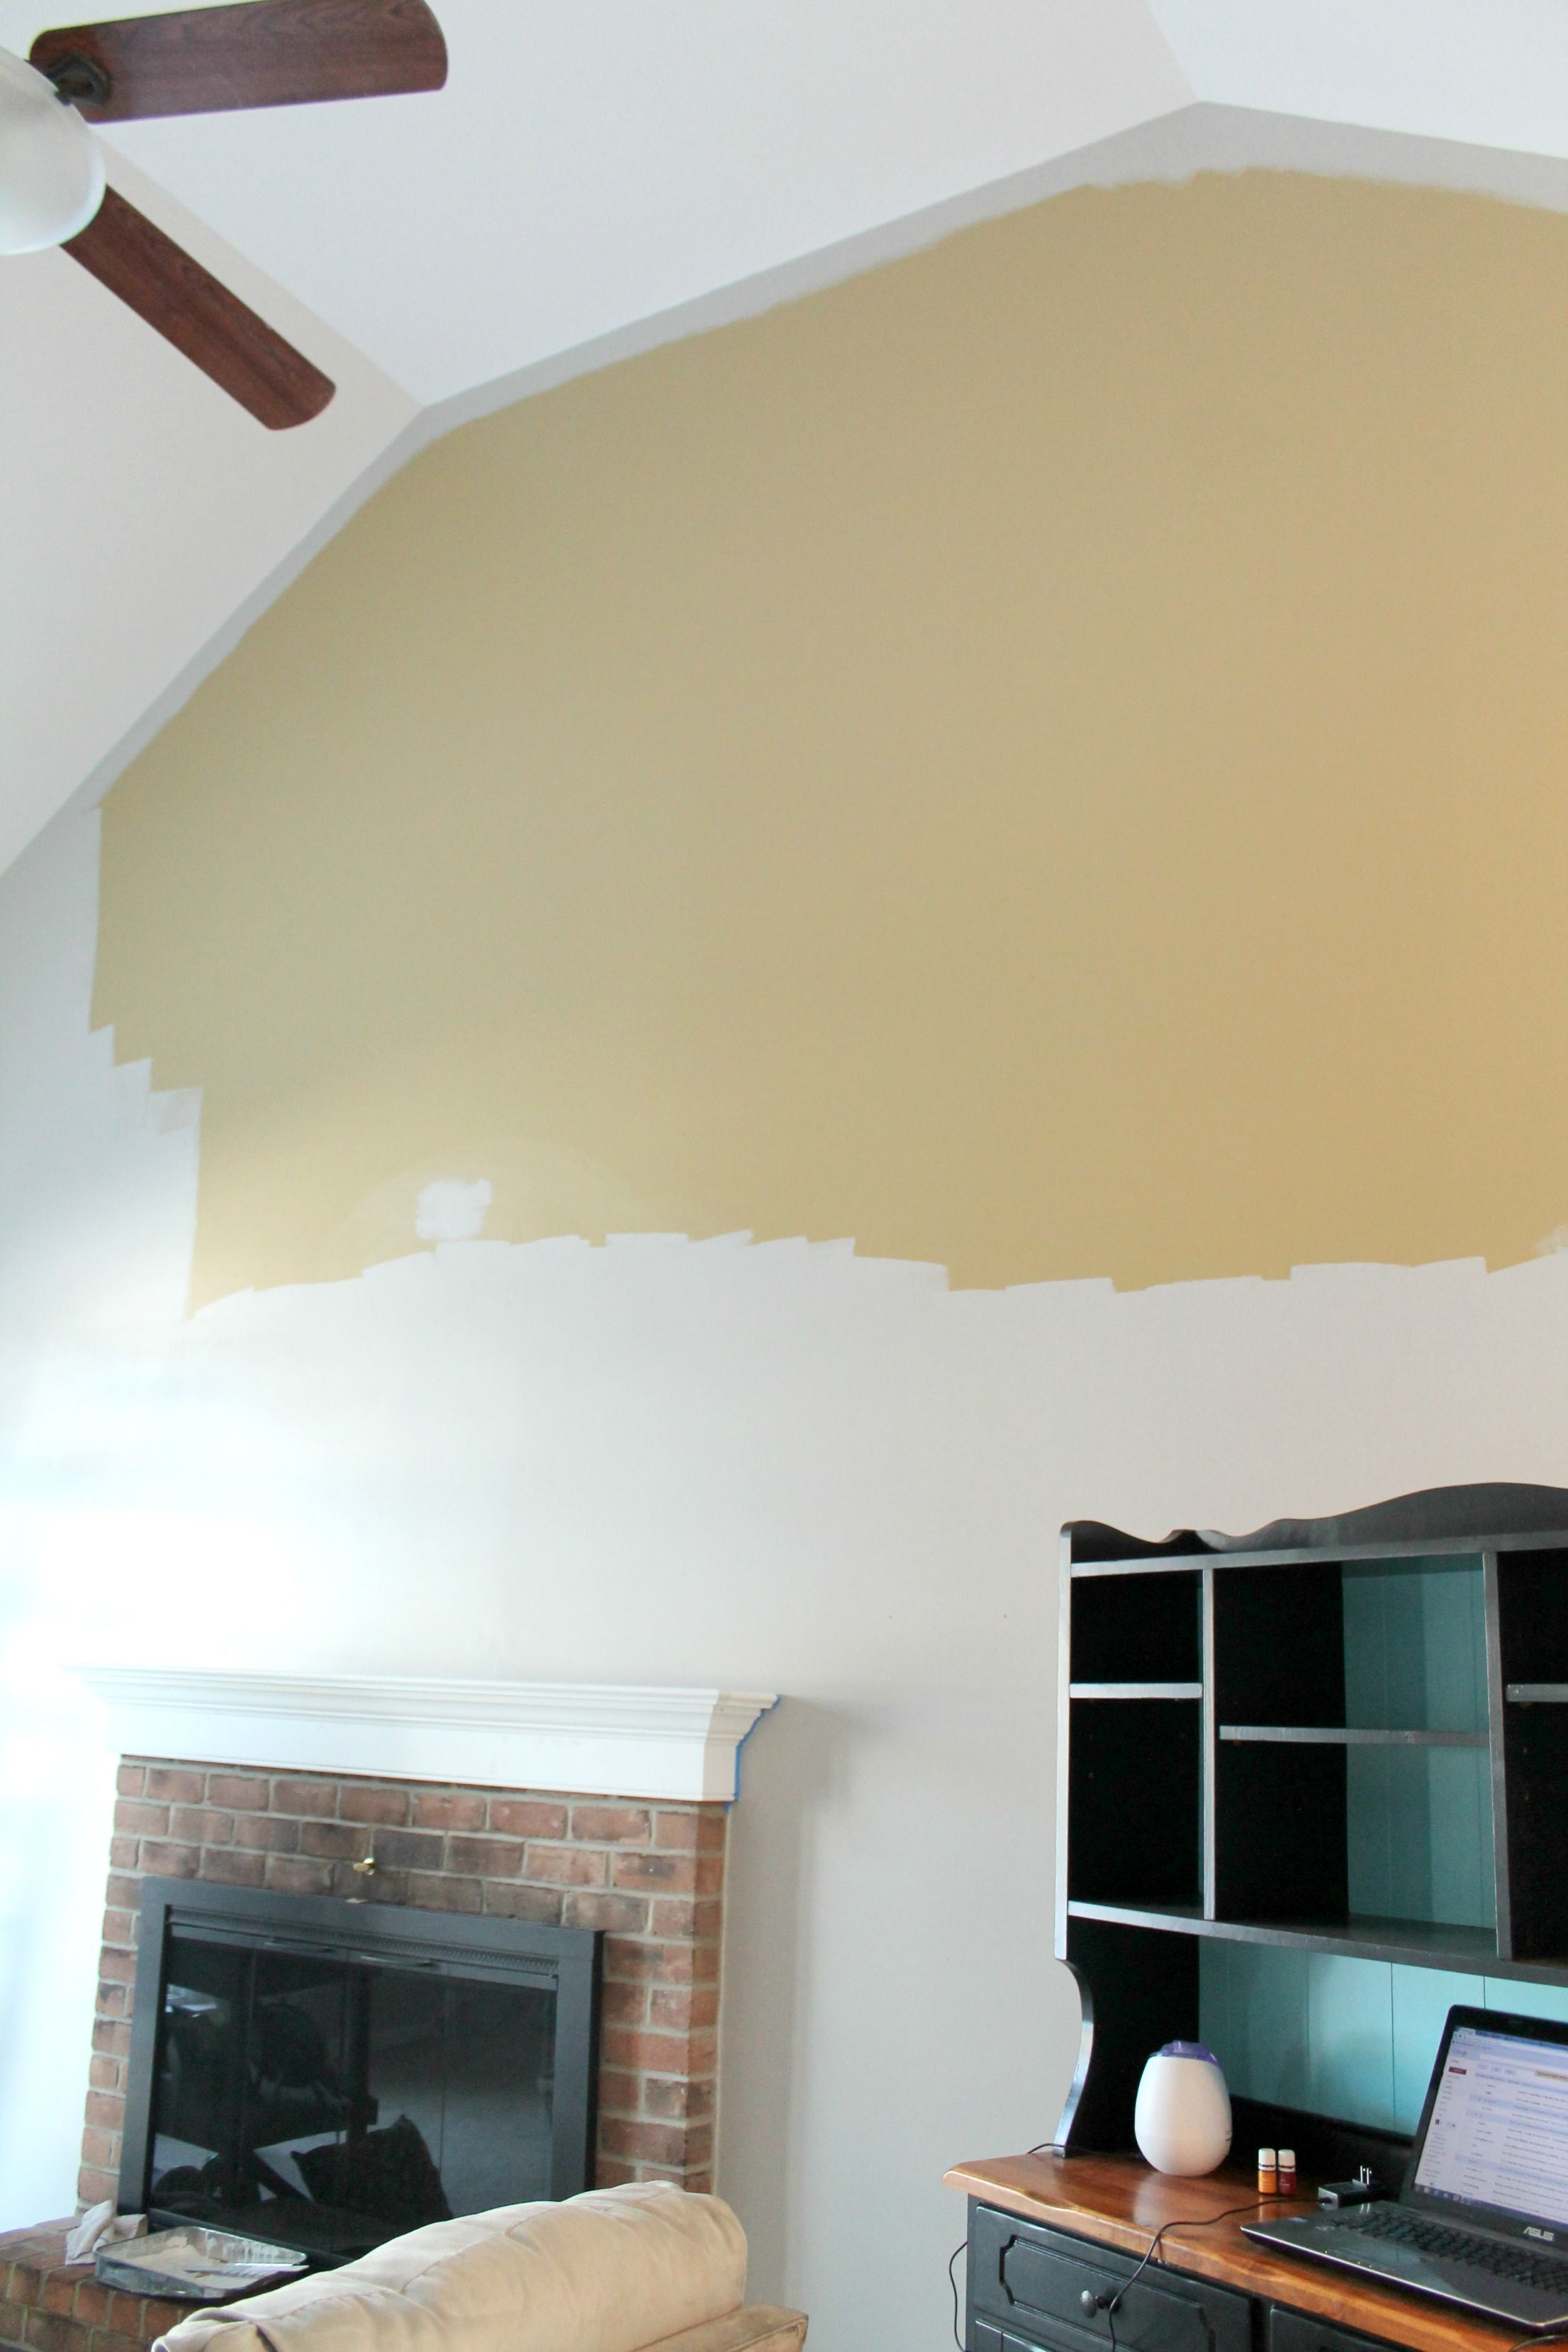 painting high ceilings | decorating | Pinterest | Ceilings ...